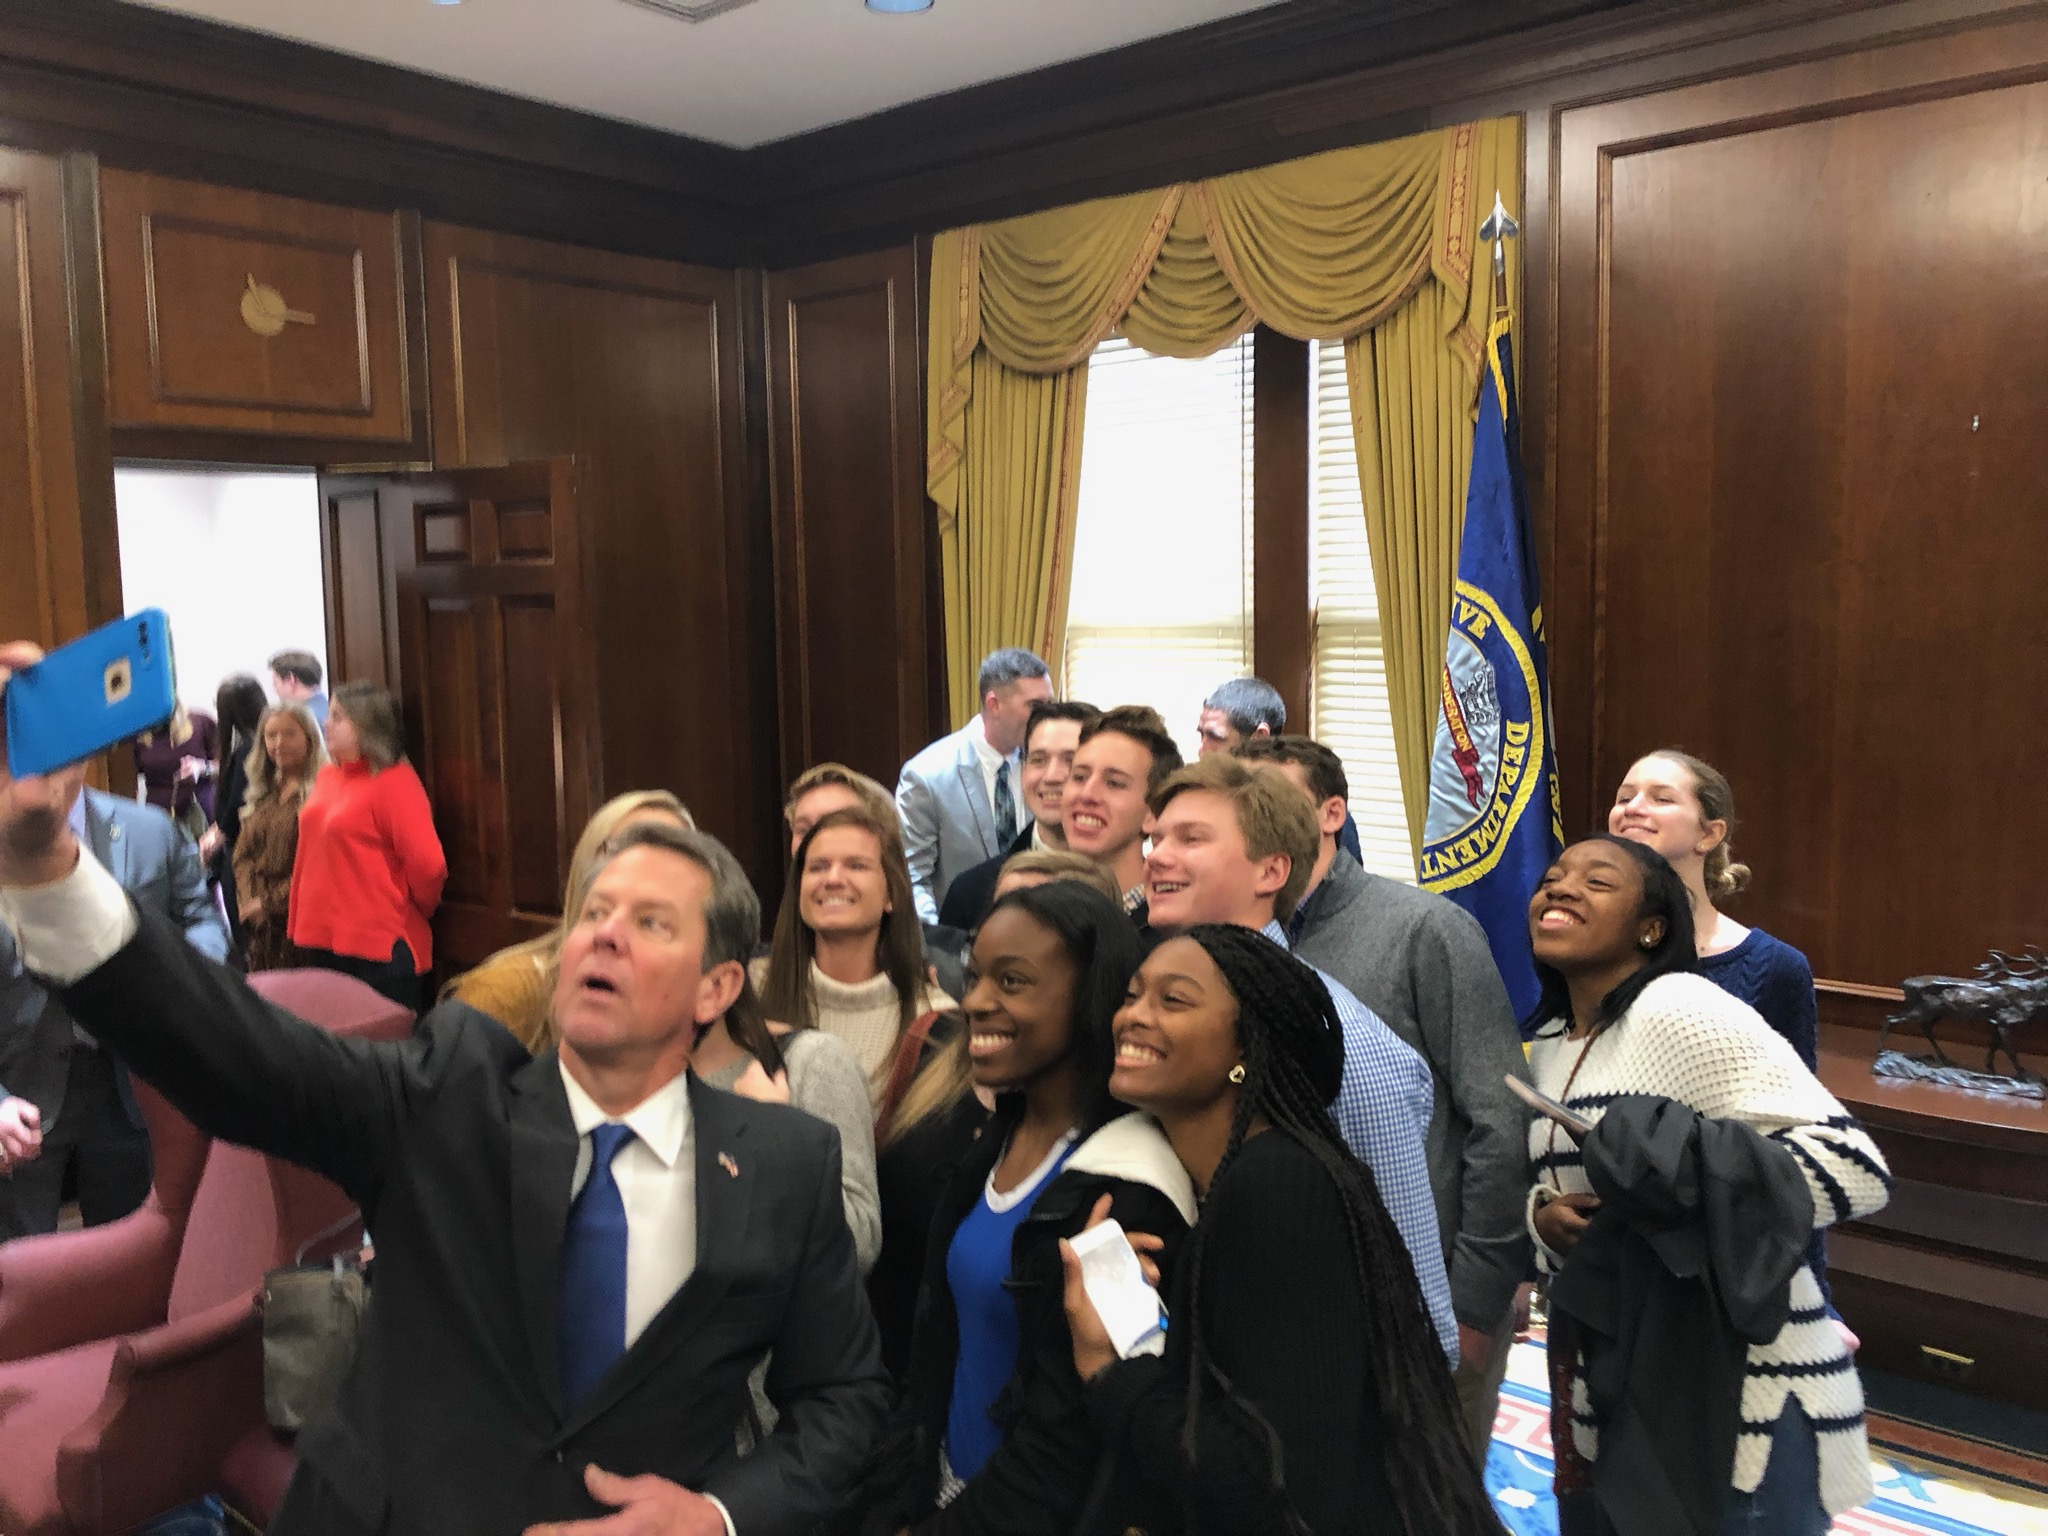 Governor-taking-selfie-with-students-photo-of-photo.jpg